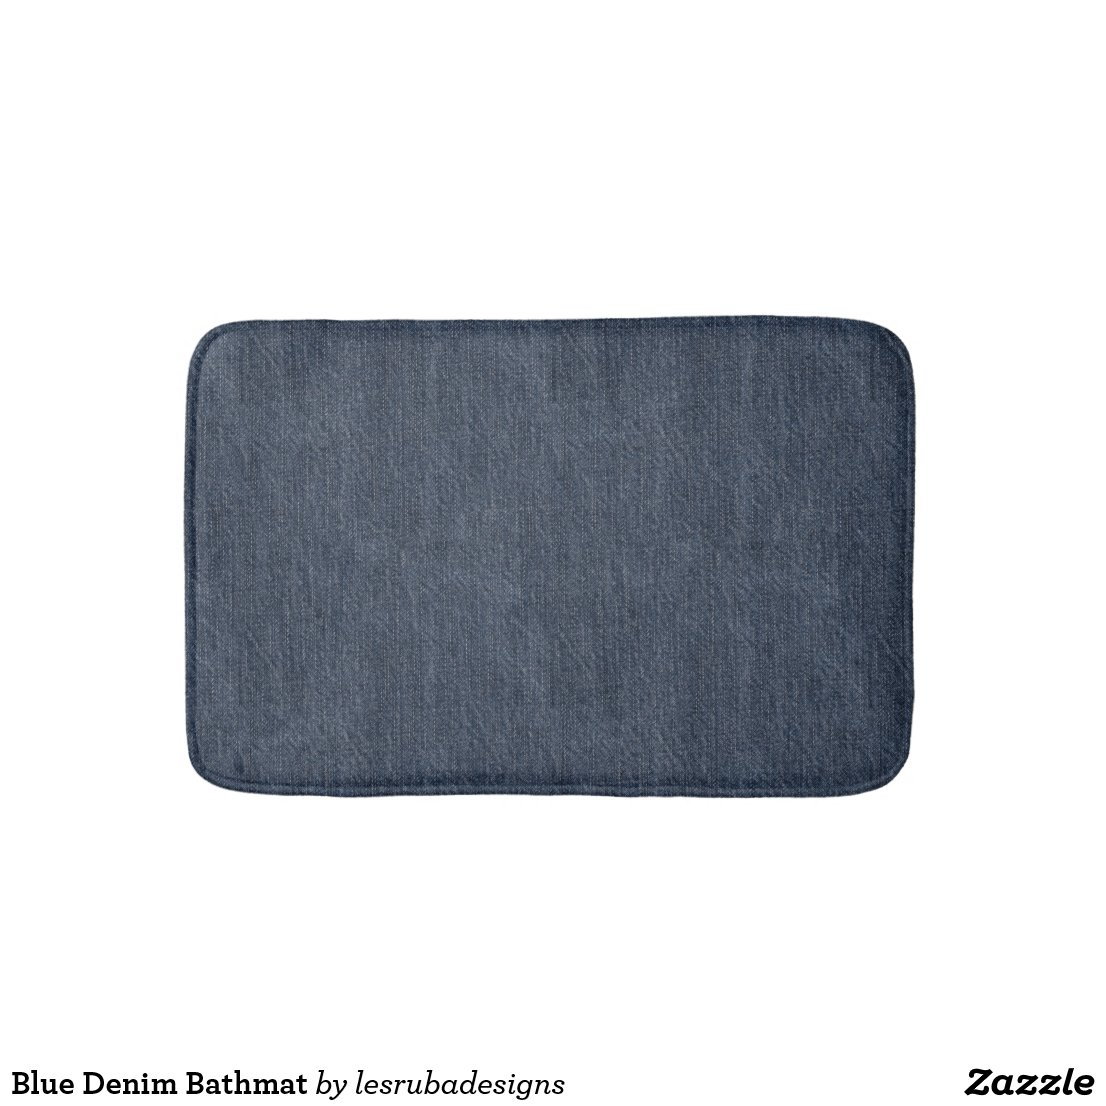 Blue Denim Bathmat